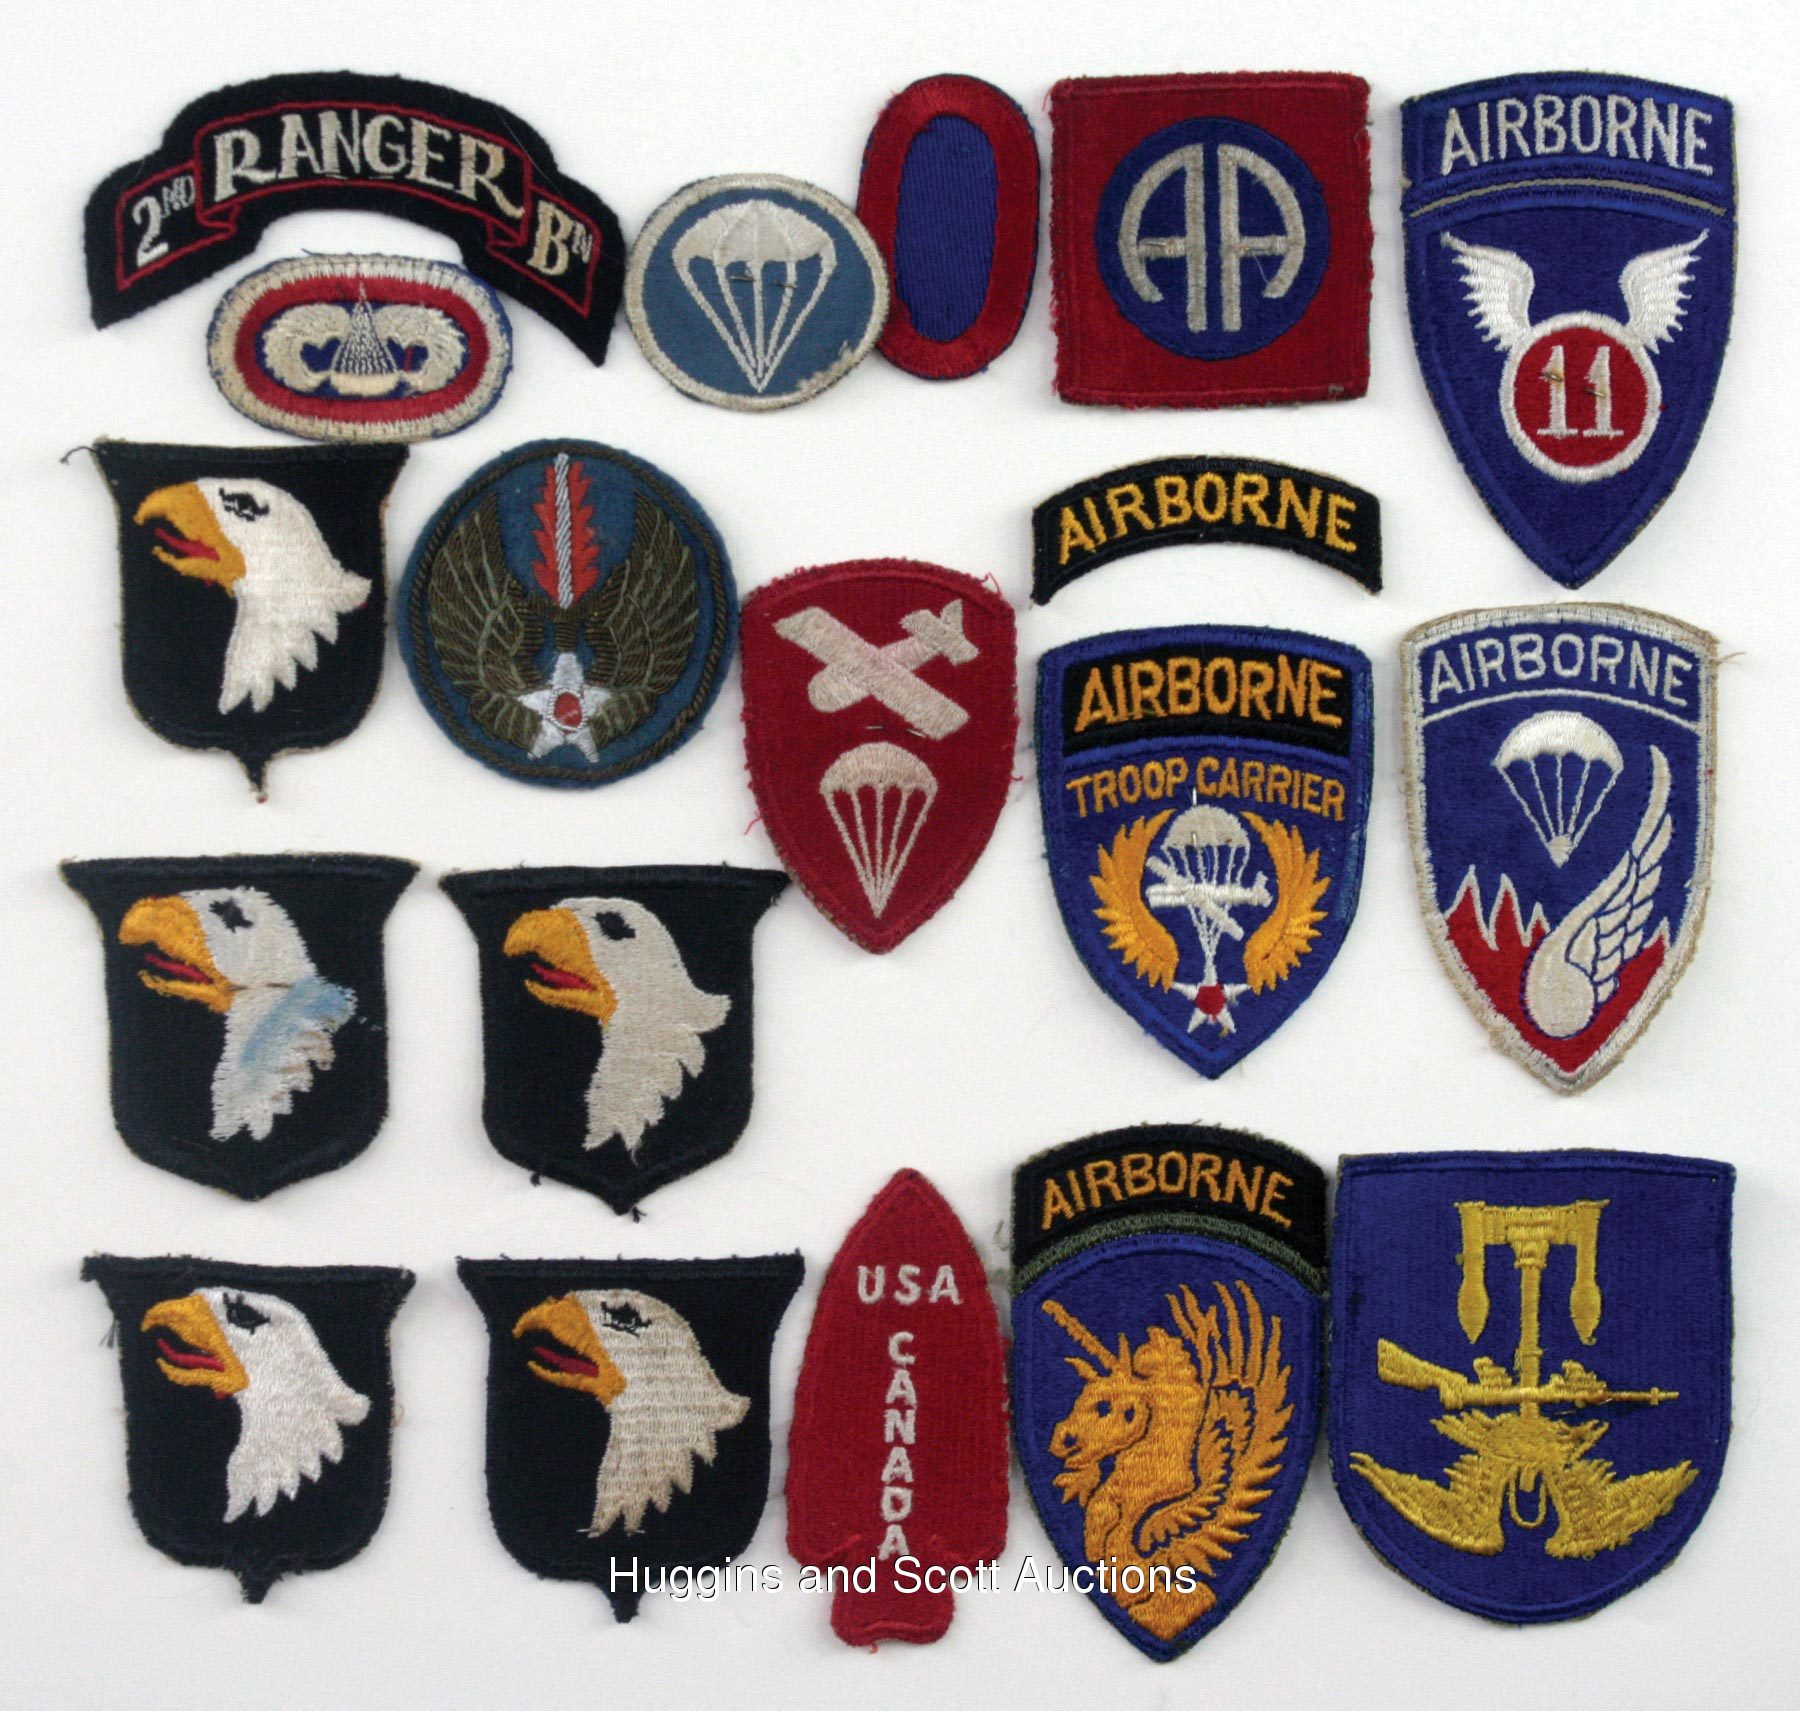 (500+) WWII & Korean War Military Patches, Rank Insignias